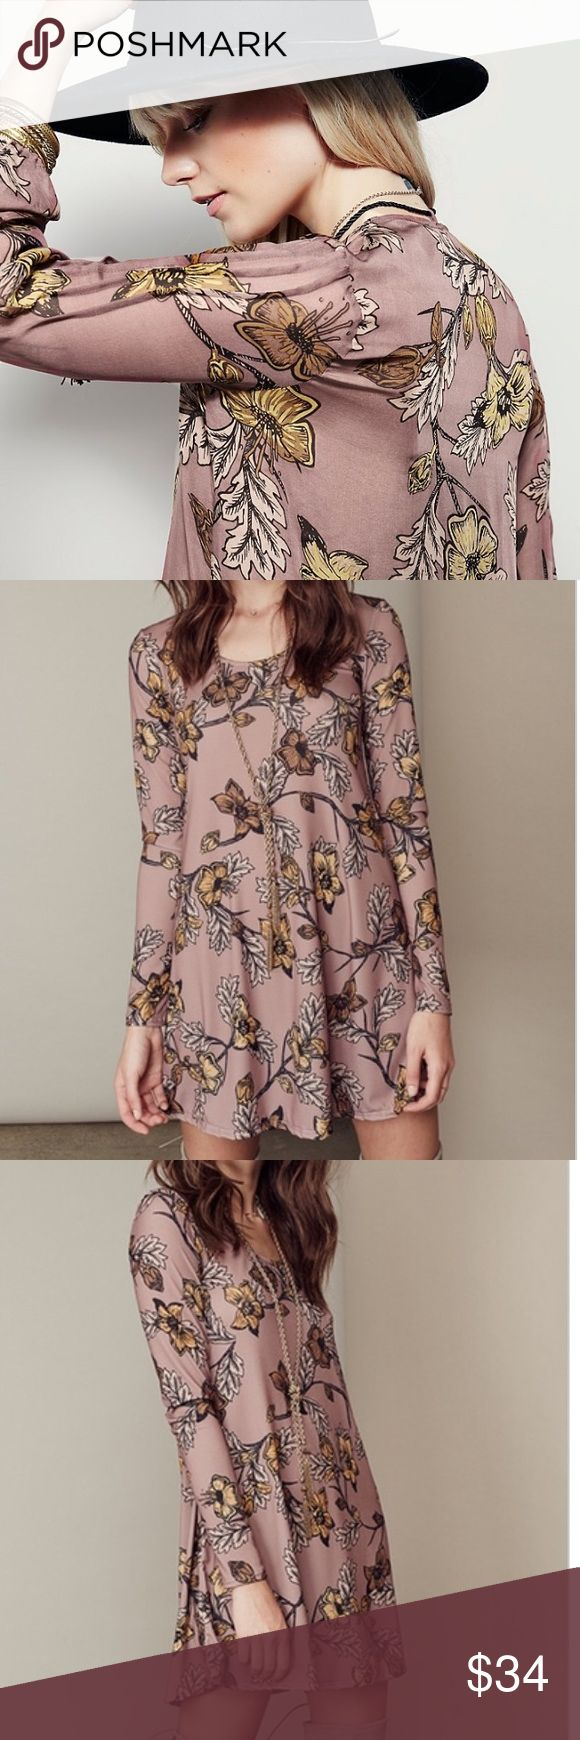 """Floral Stretch Shift DRESS Longsleeve BRAND NEW!! Longsleeve Shift Dress in a beautiful all over Floral print perfect for the season.    S: Bust: 34.8""""/Length: 33.1"""" M: Bust: 37.2""""/Length: 33.6"""" L: Bust: 39.1""""/Length: 34.1""""  🌟🌟Item is Brand New, direct from the Manufacturer, & Sealed in Pkg. 🌟🌟 austin gal Dresses Long Sleeve"""